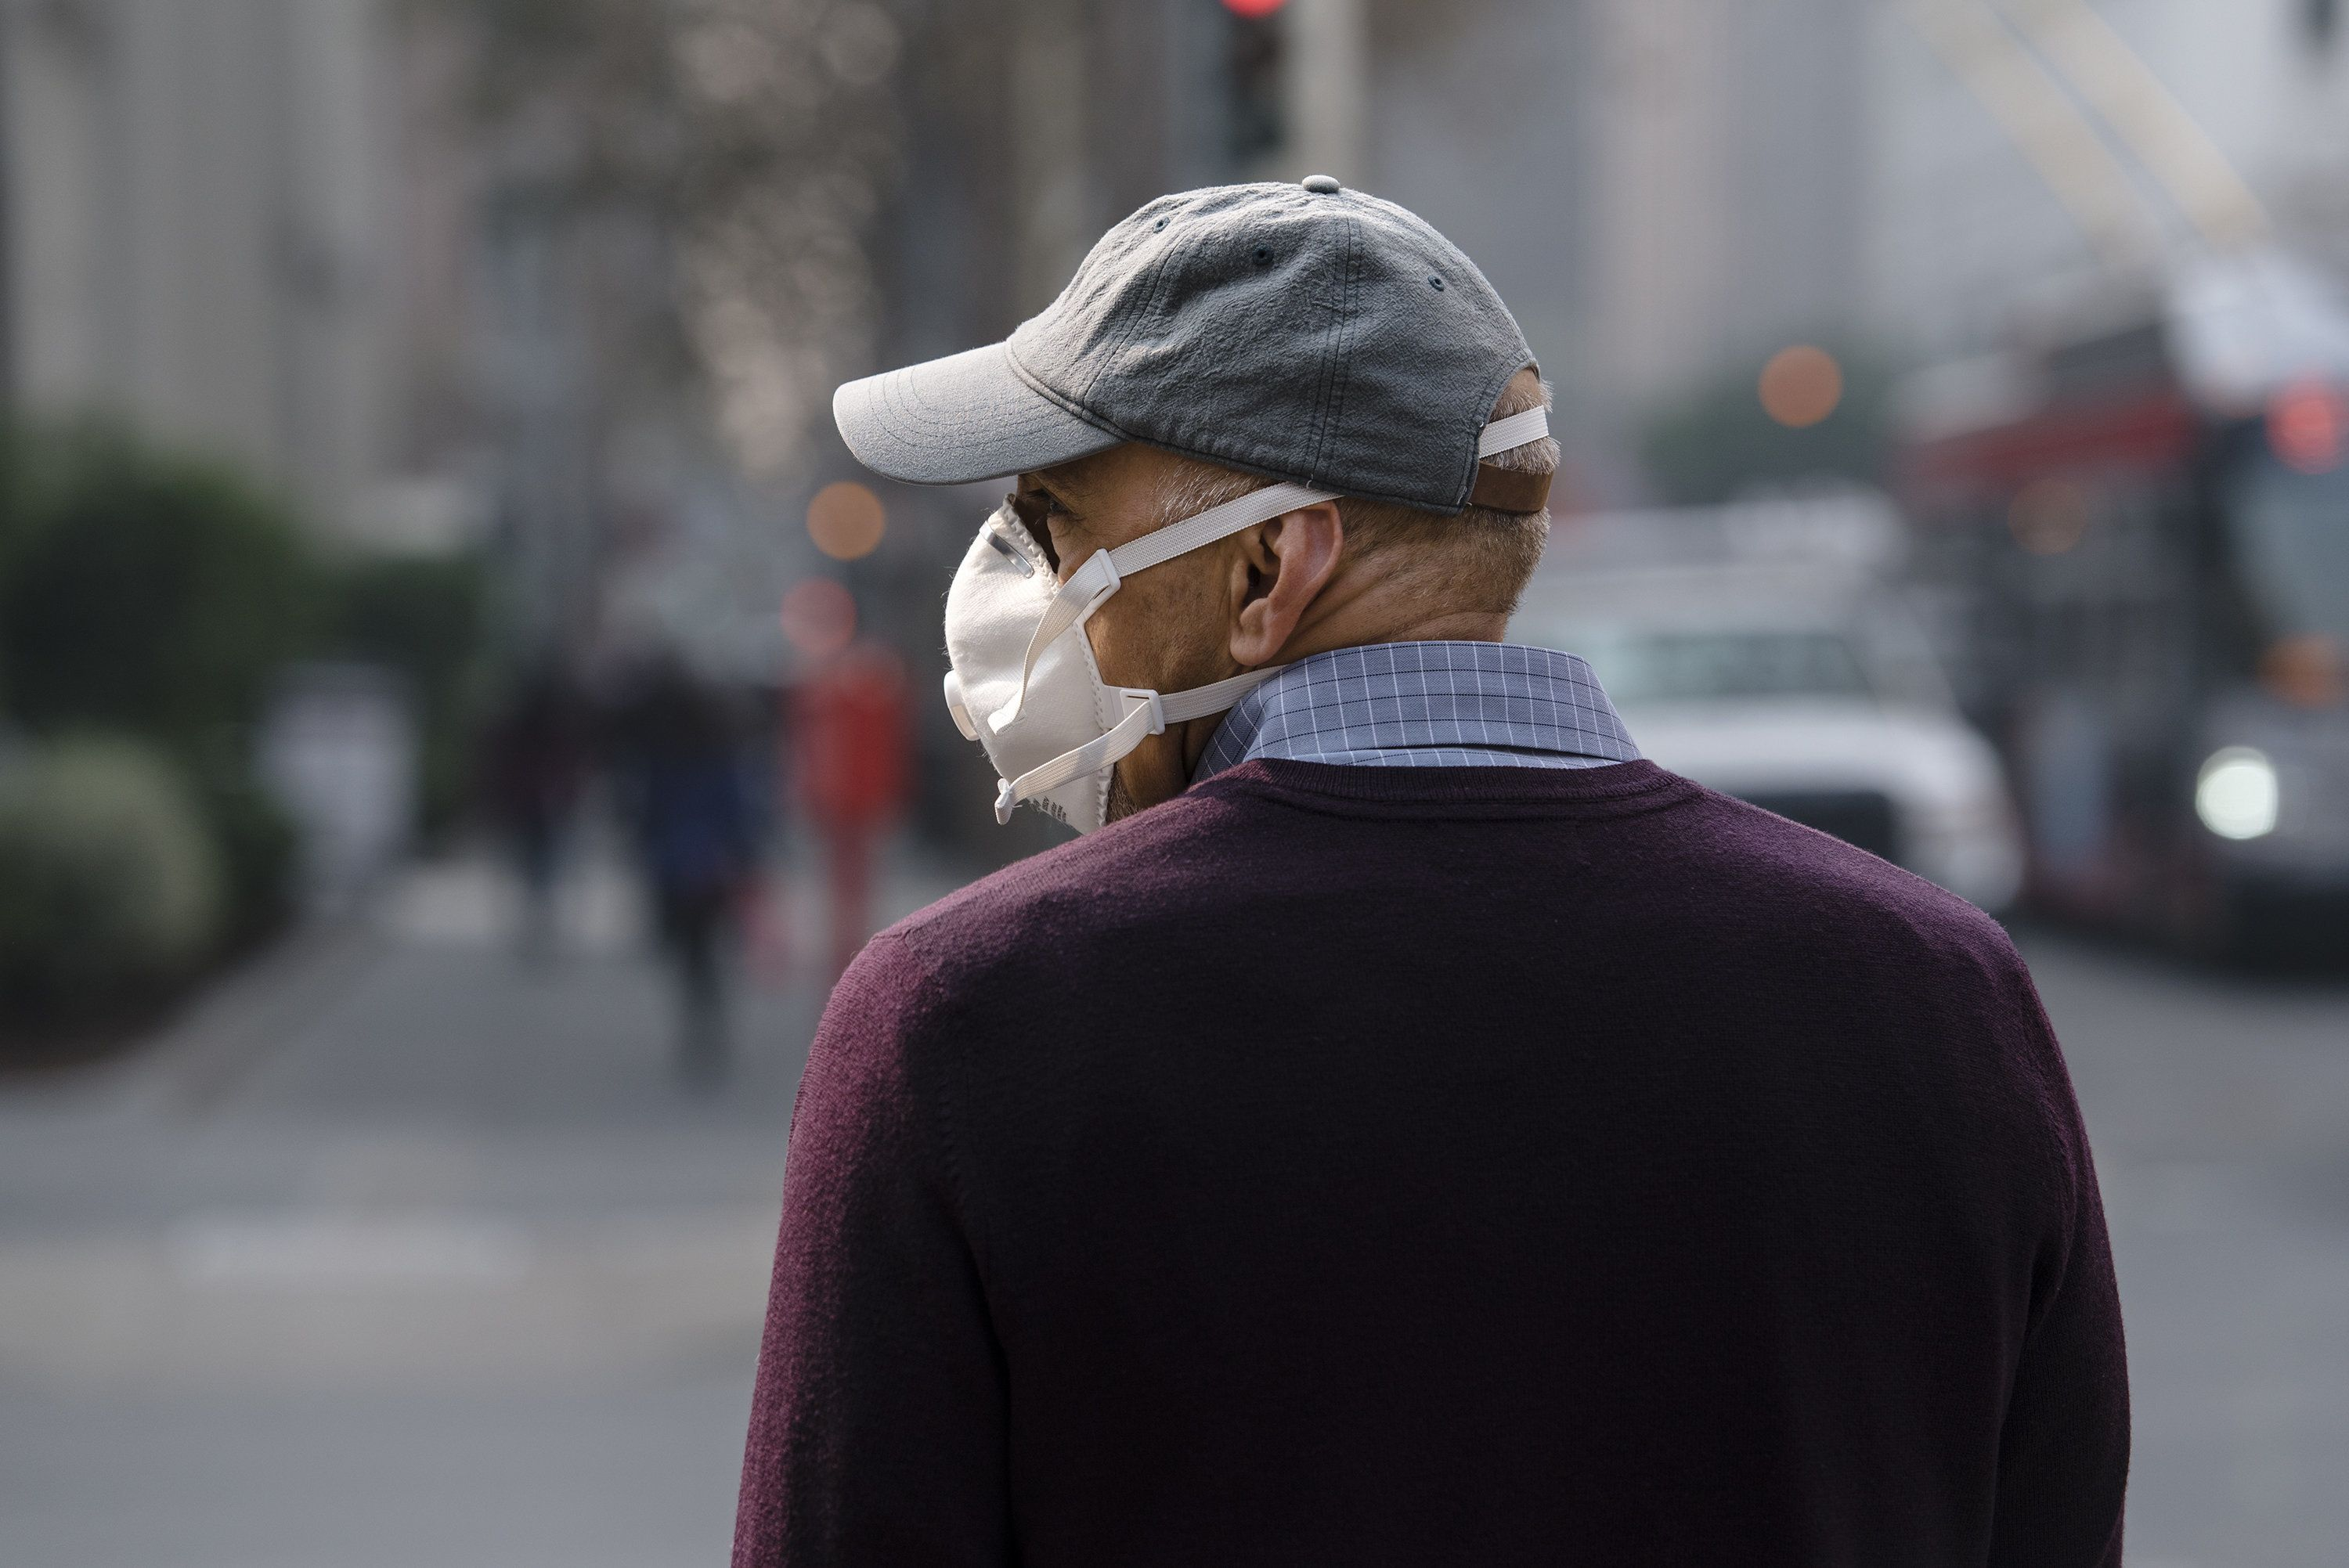 A man wears a mask while smoke from the Camp Fire fills the air in San Francisco, California, U.S., on Thursday, Nov. 15, 2018. The smoke from Californias deadliest fire is so thick that its blotting out the sun and lowering surface temperatures by as much as 10 degrees Fahrenheit (6 Celsius), according to the U.S. National Weather Service. Photographer: Michael Short/Bloomberg via Getty Images